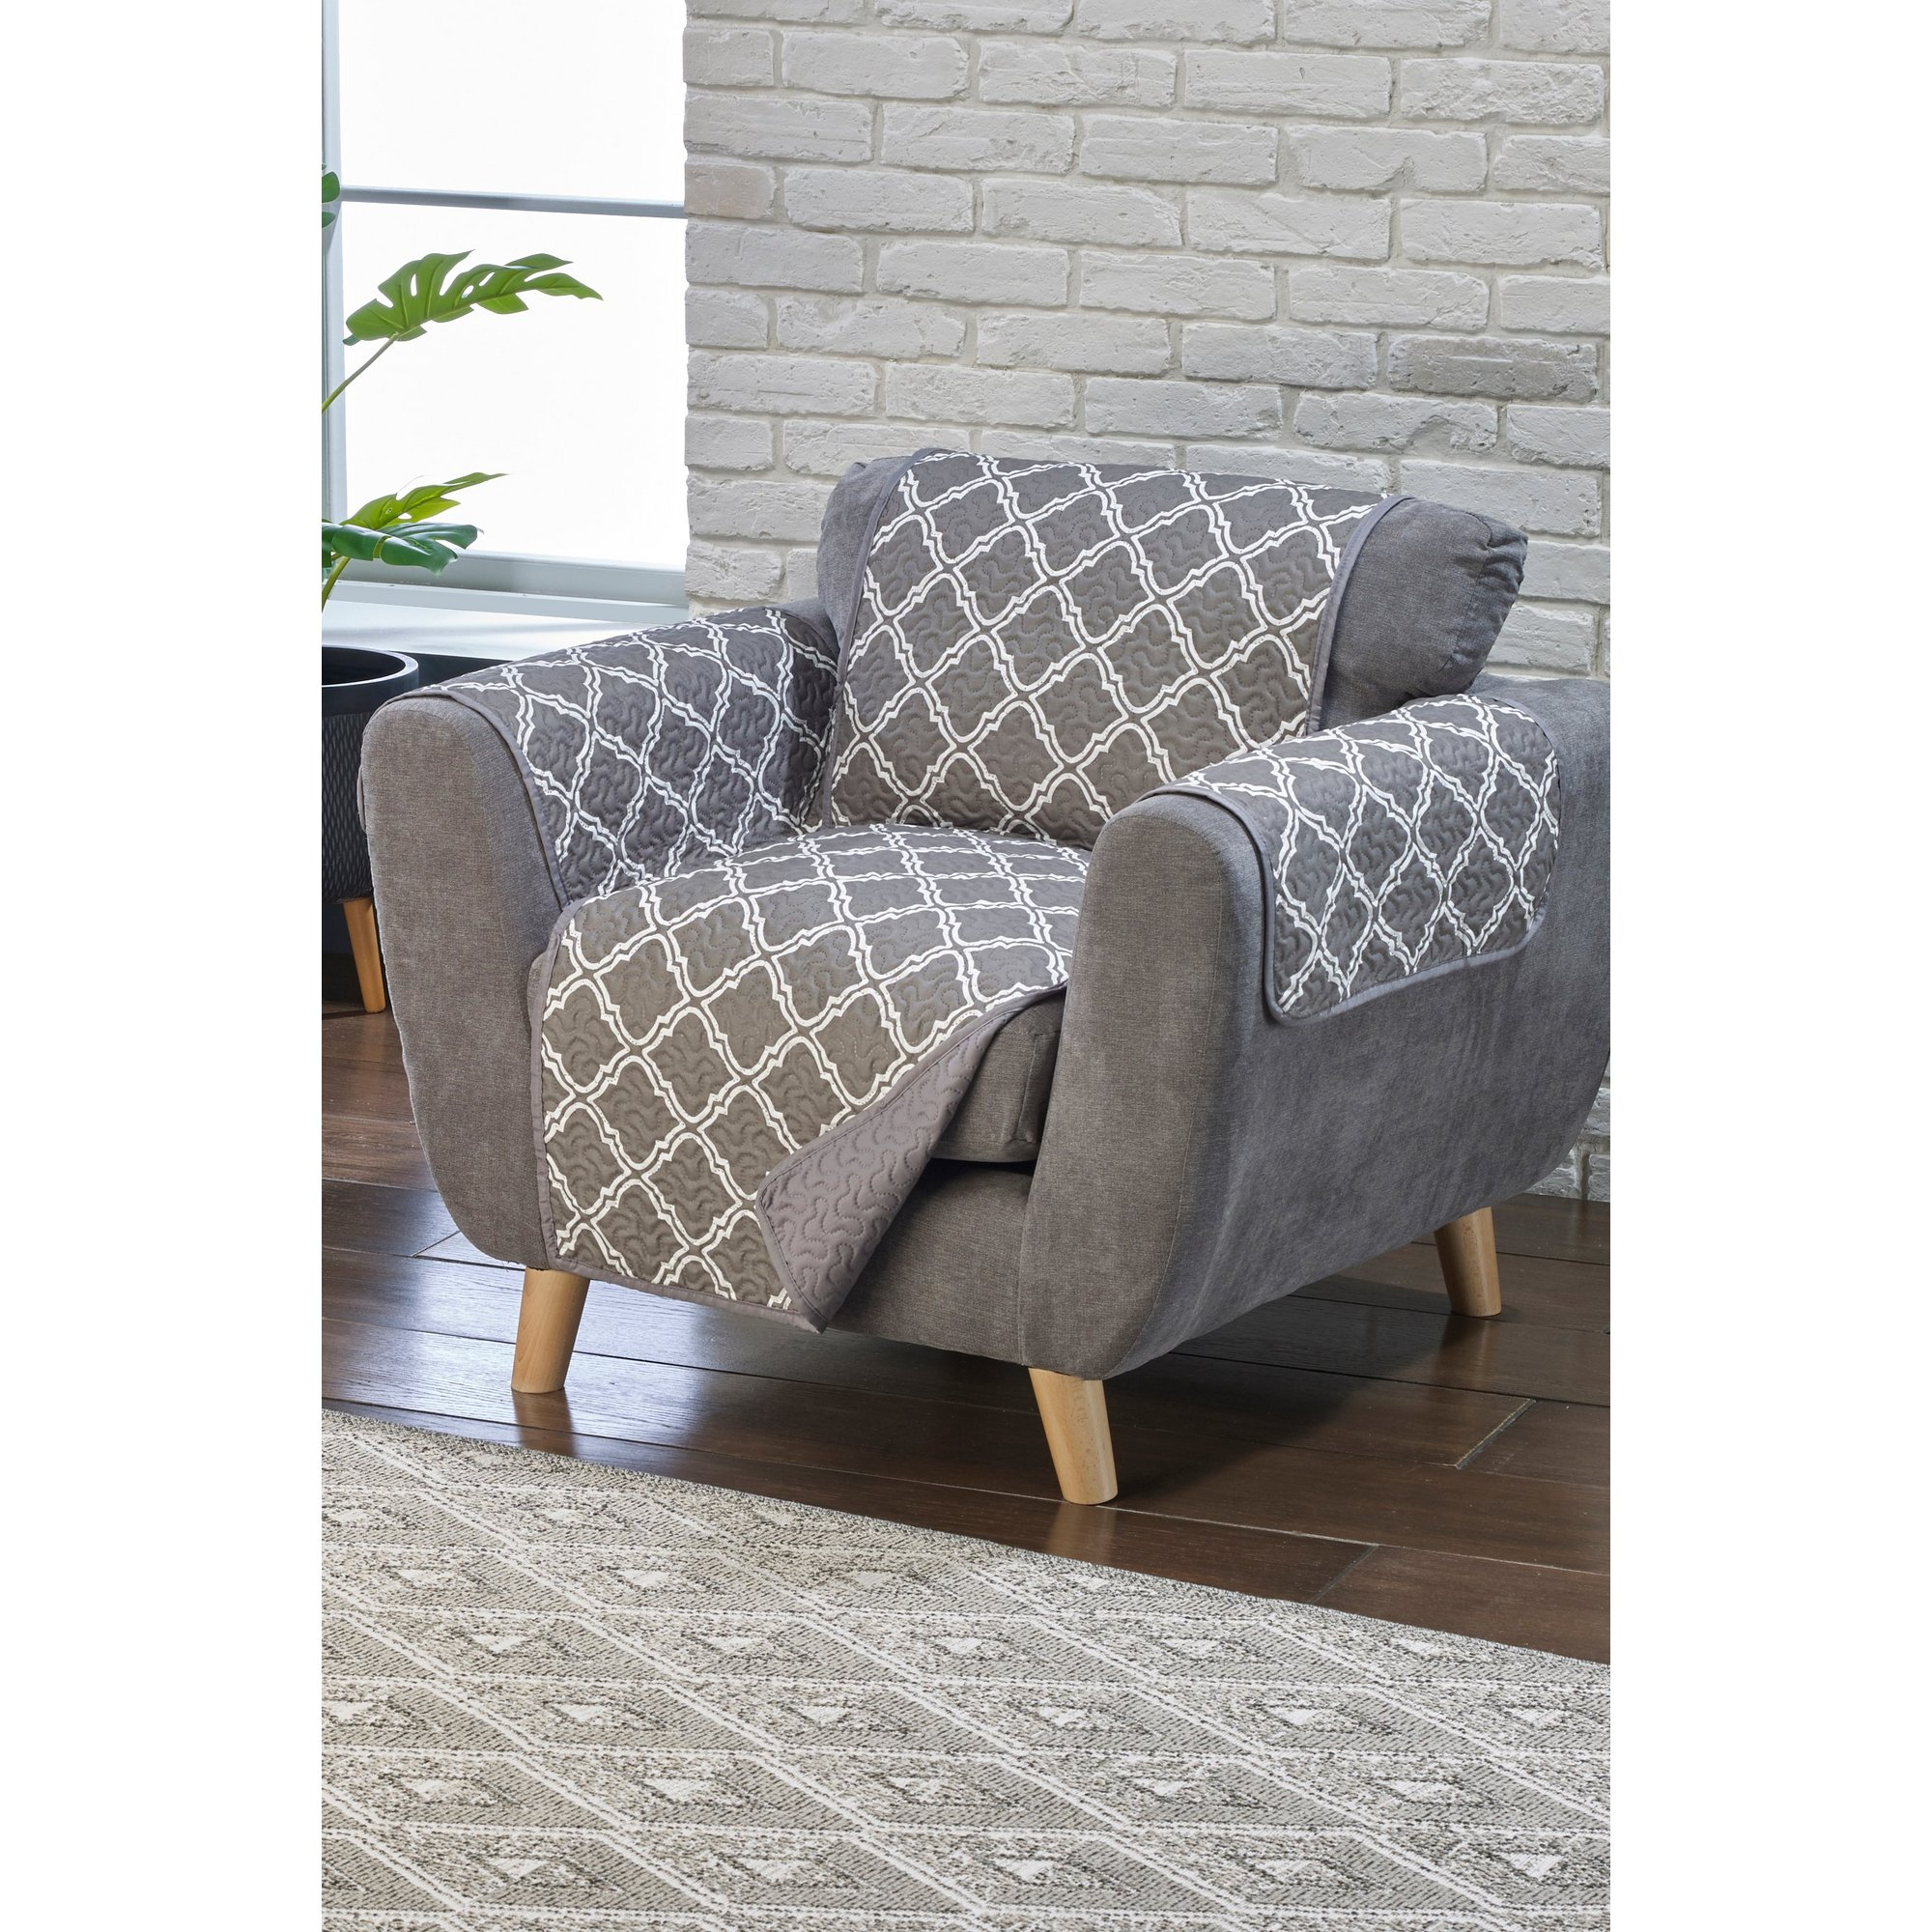 Image of Reversible Quilted Geo Print Furniture Protector